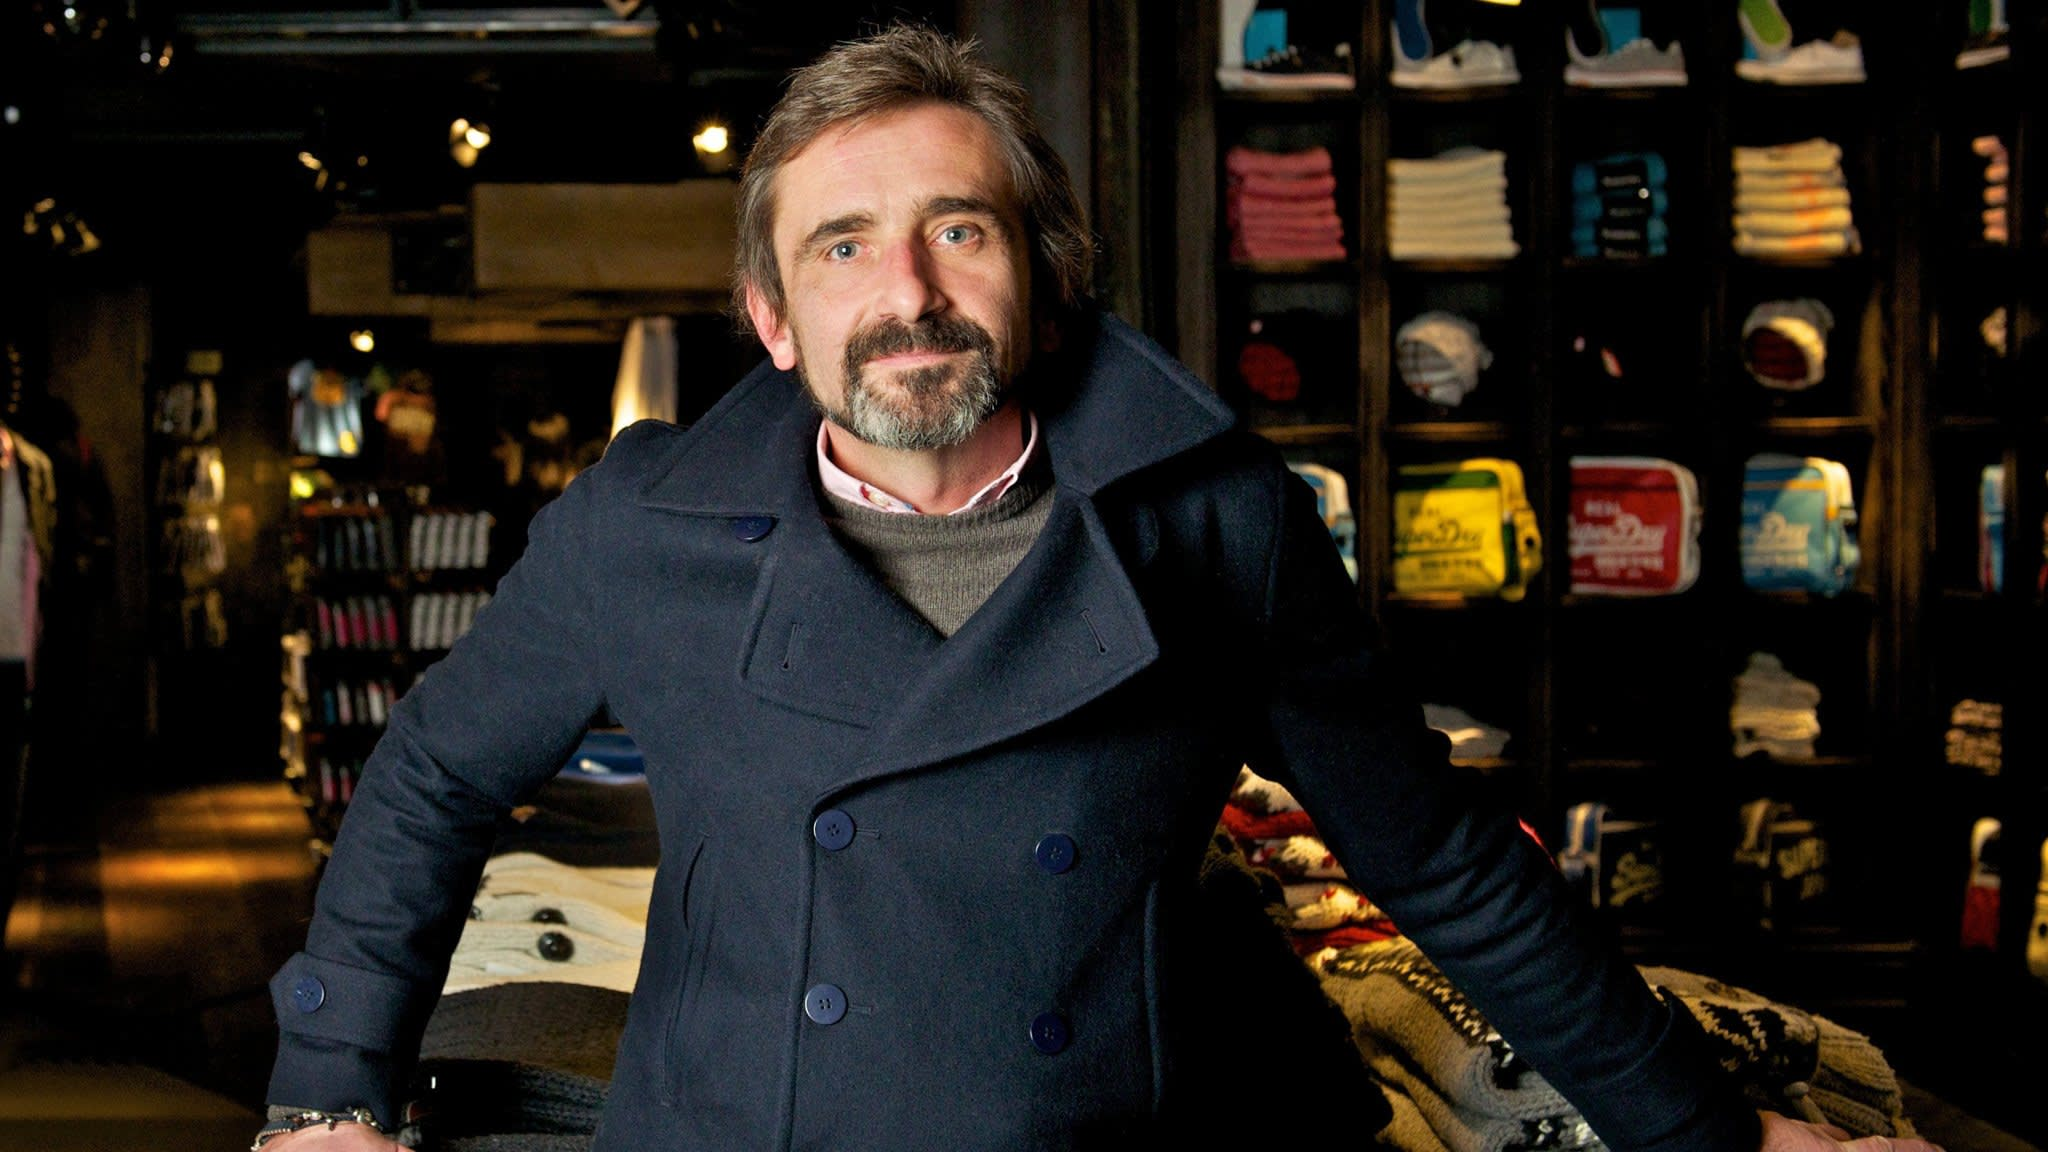 Superdry founder donates record £1m to pro-EU group